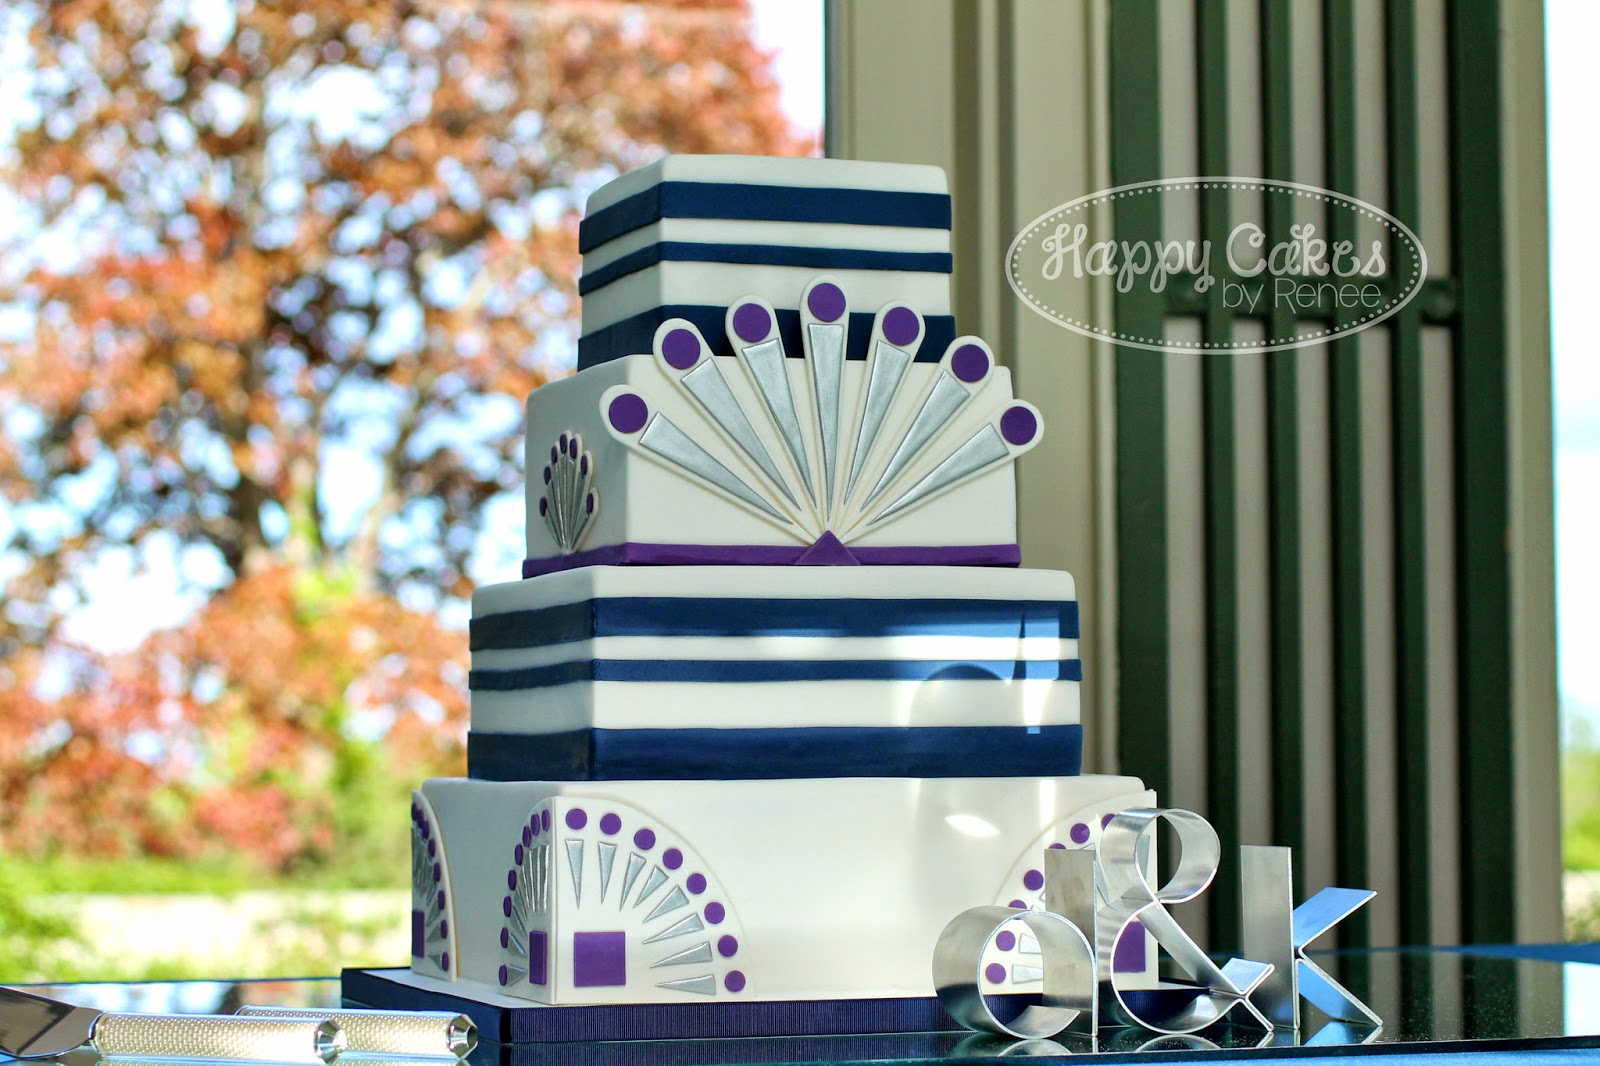 Happy cakes bakes great gatsby art deco themed wedding cake